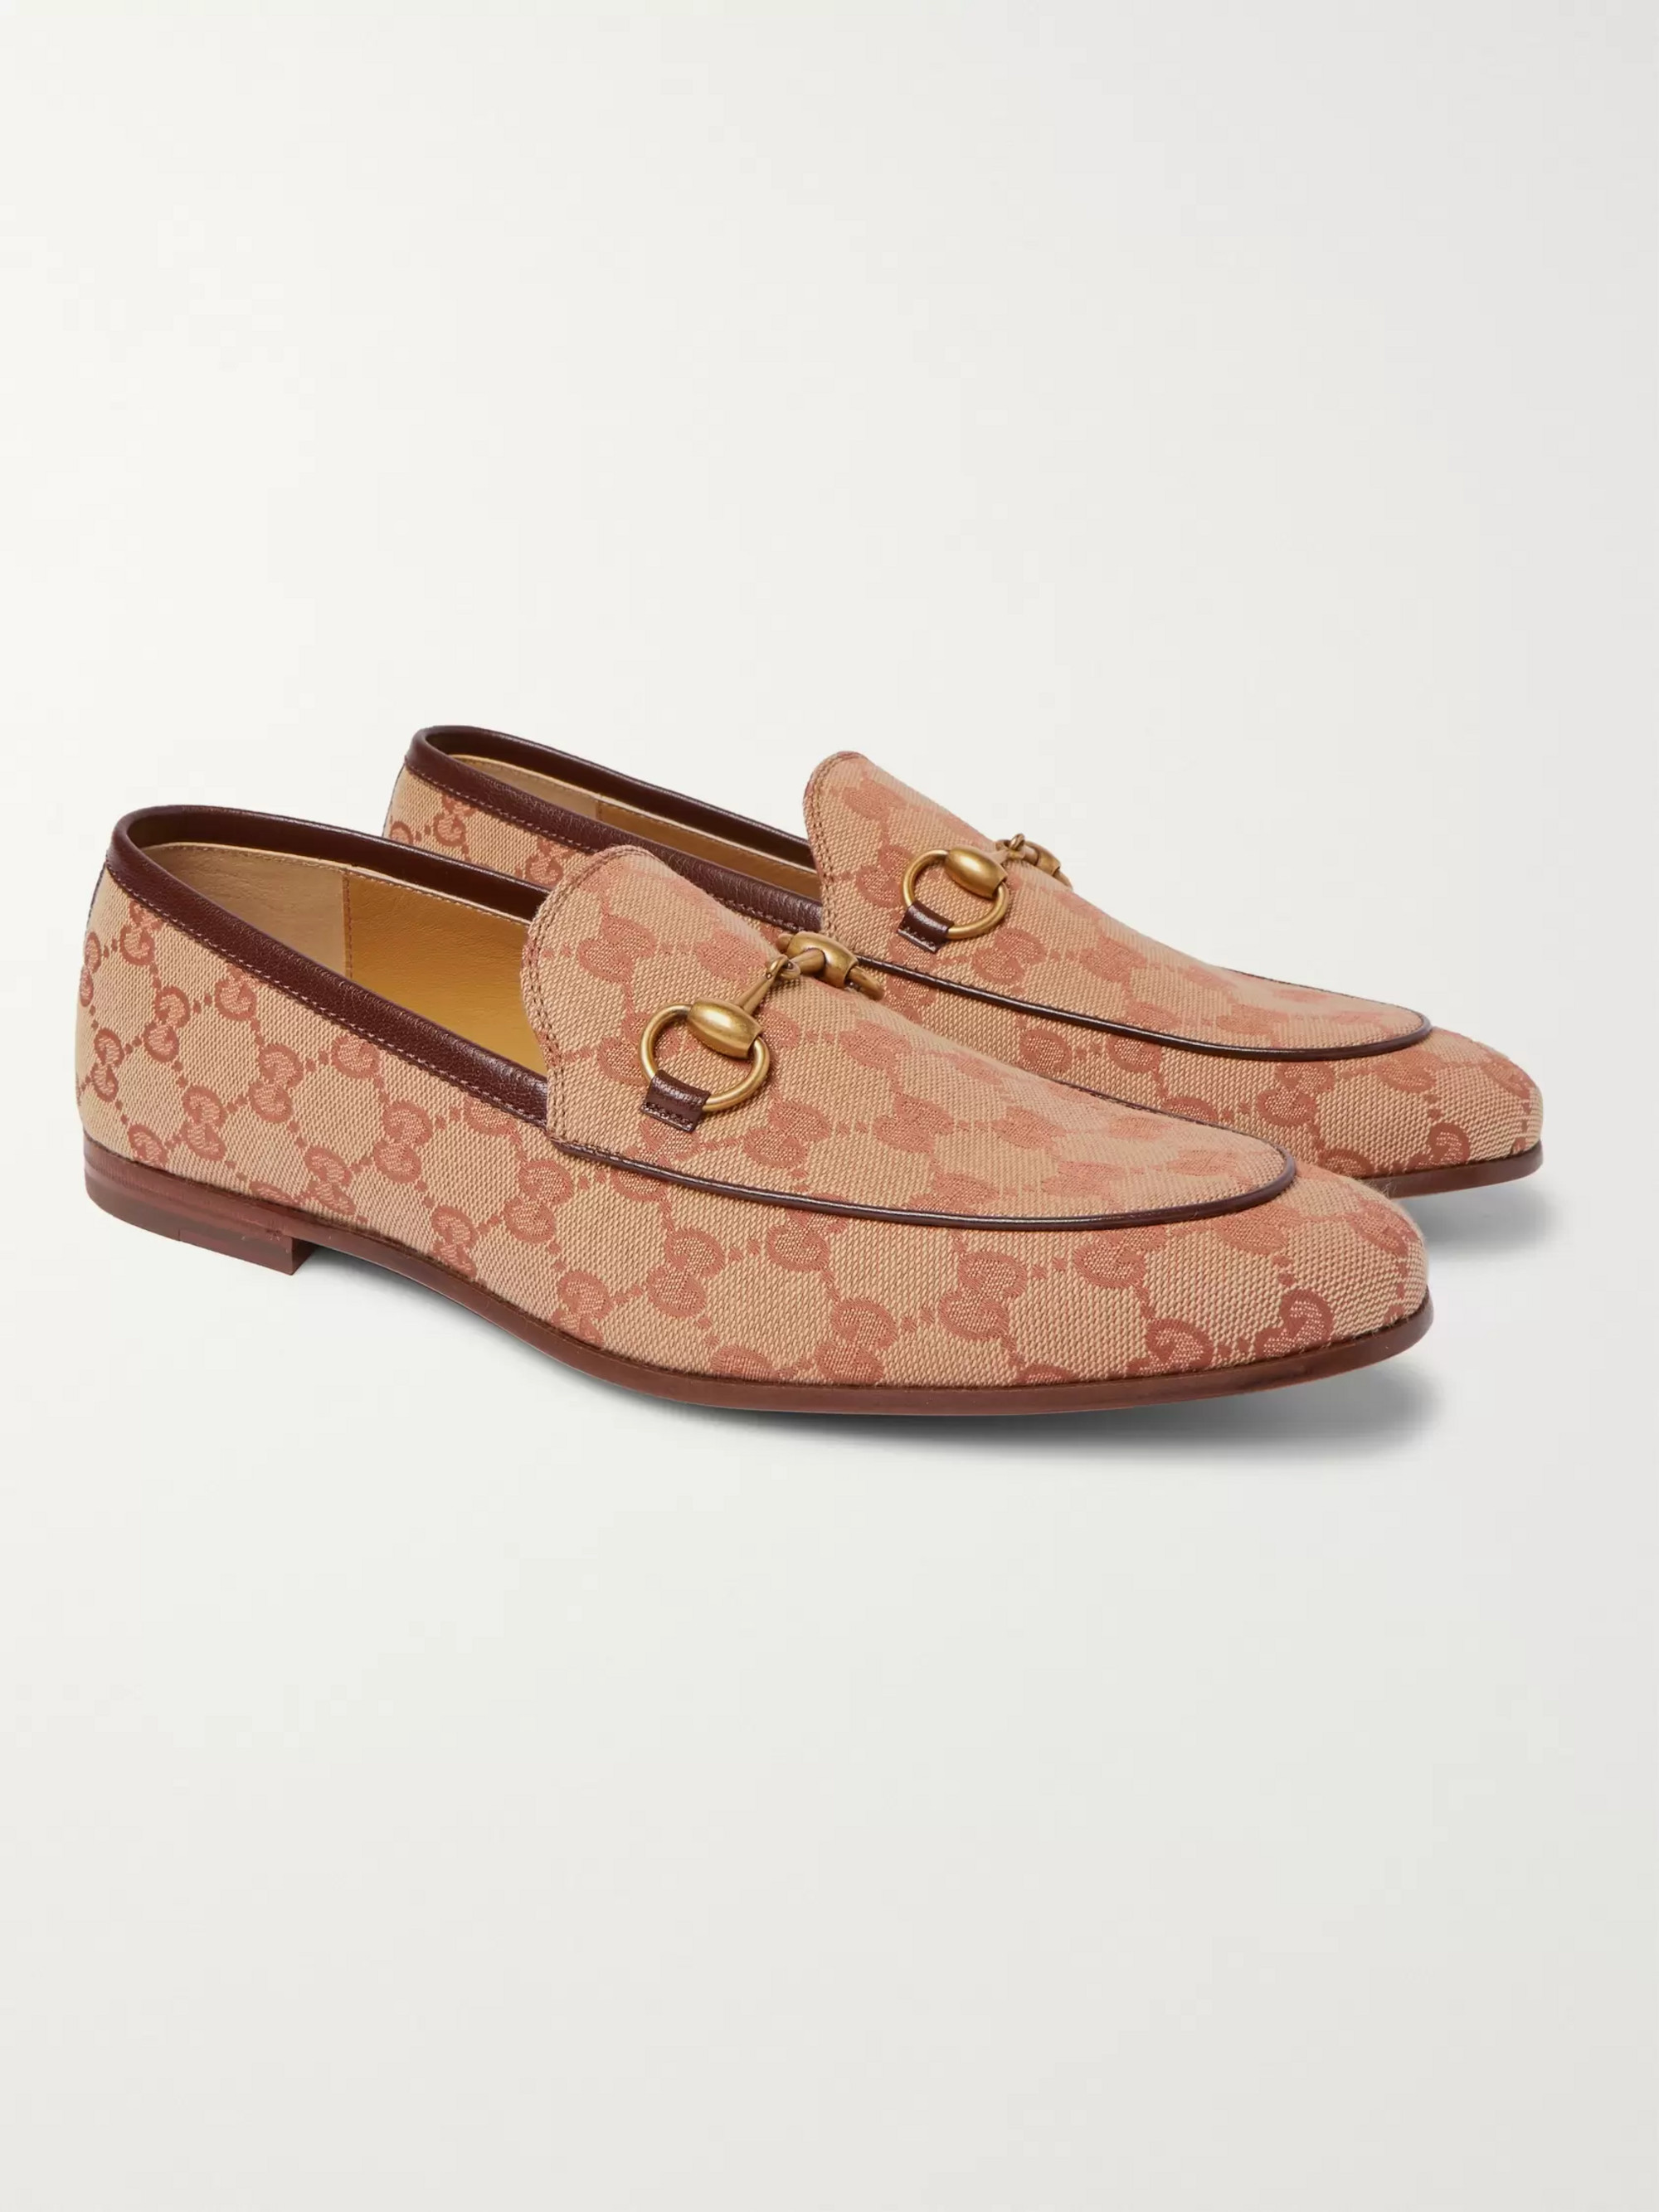 2244ac1ad Gucci Jordaan Horsebit Leather-Trimmed Monogrammed Canvas Loafers